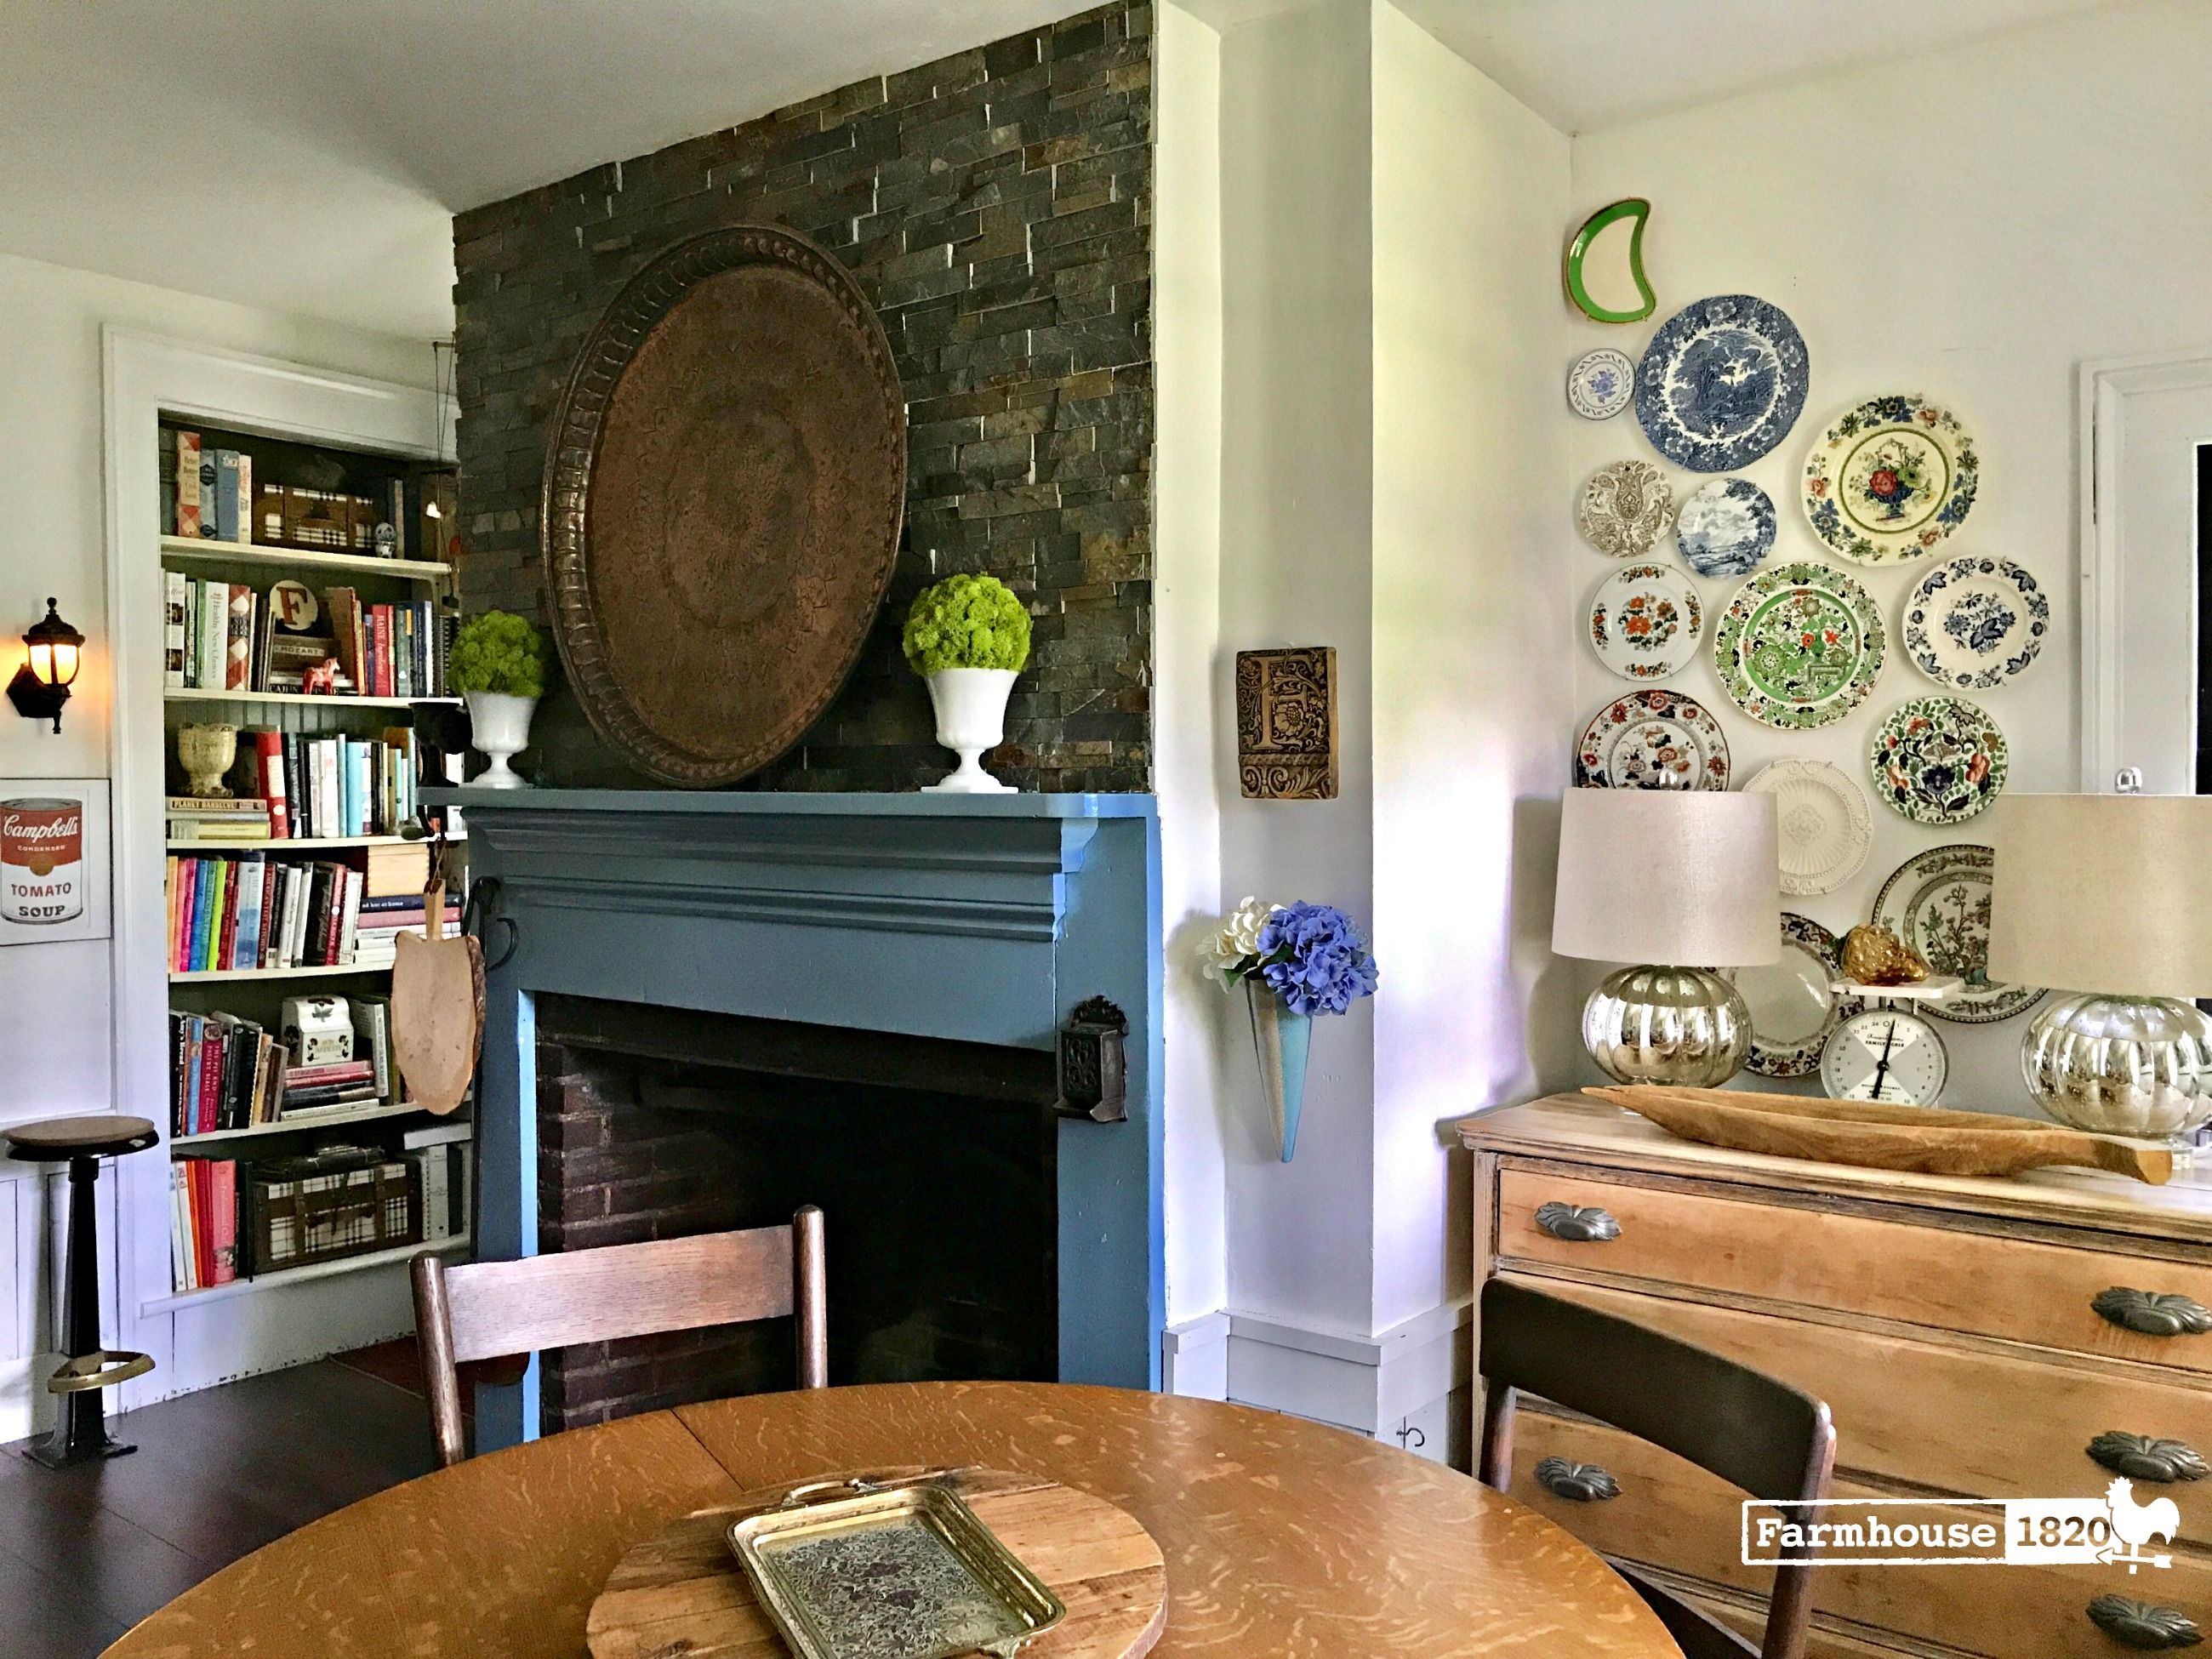 The Kitchen at Farmhouse 1820 - dining by the fireplace